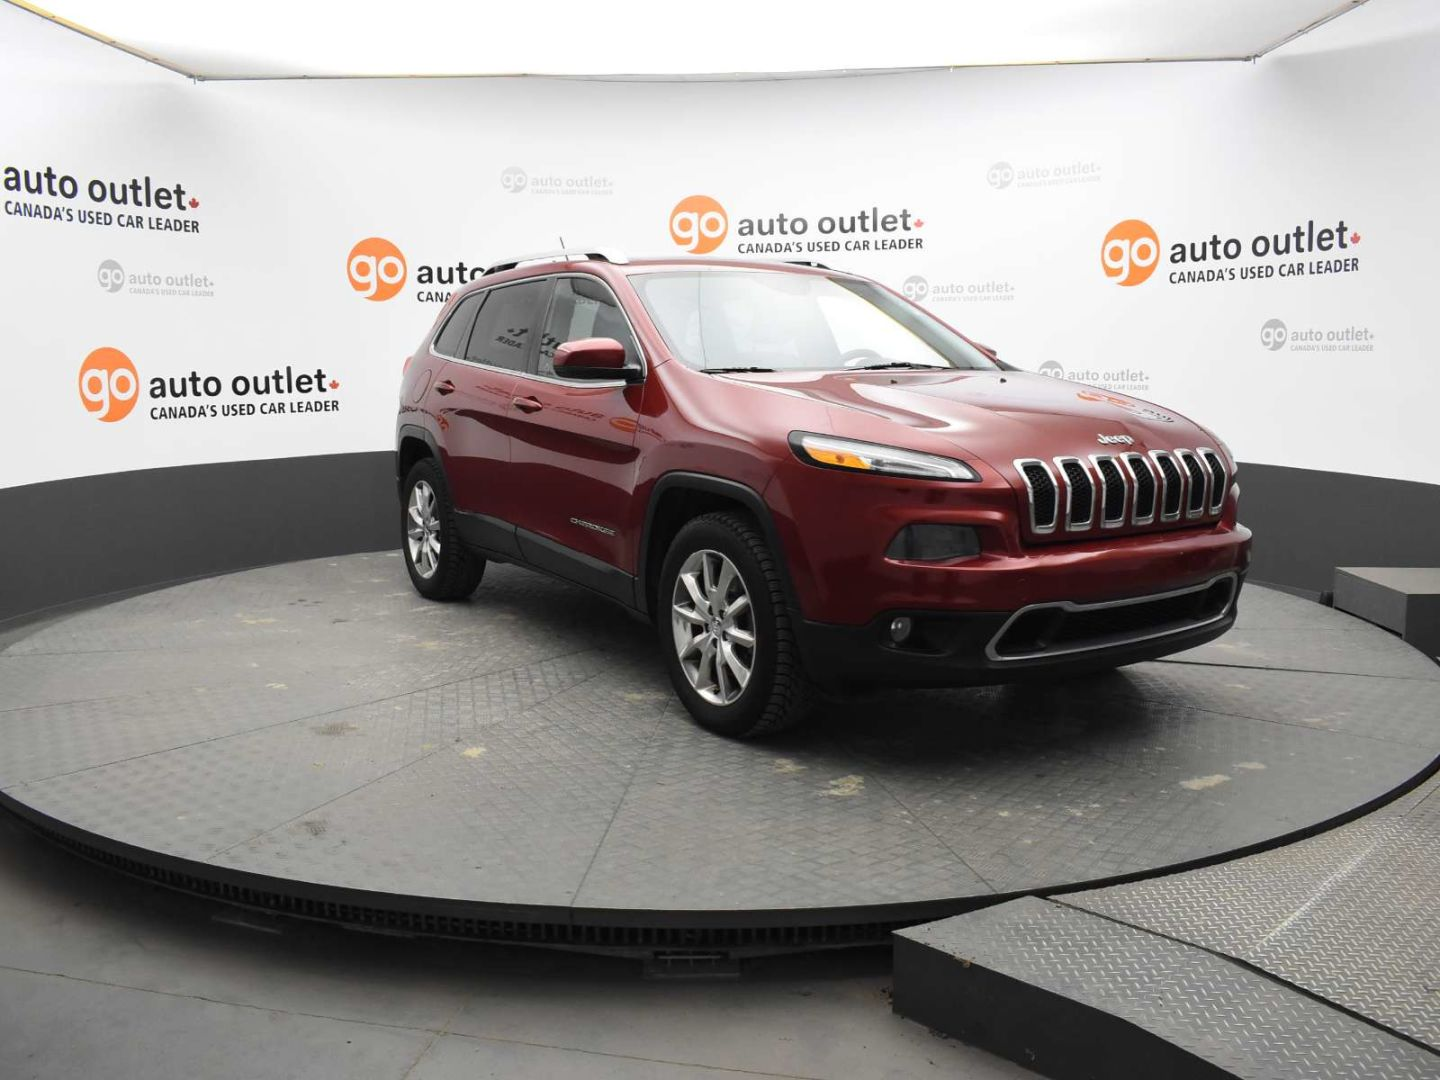 2014 Jeep Cherokee Limited for sale in Leduc, Alberta